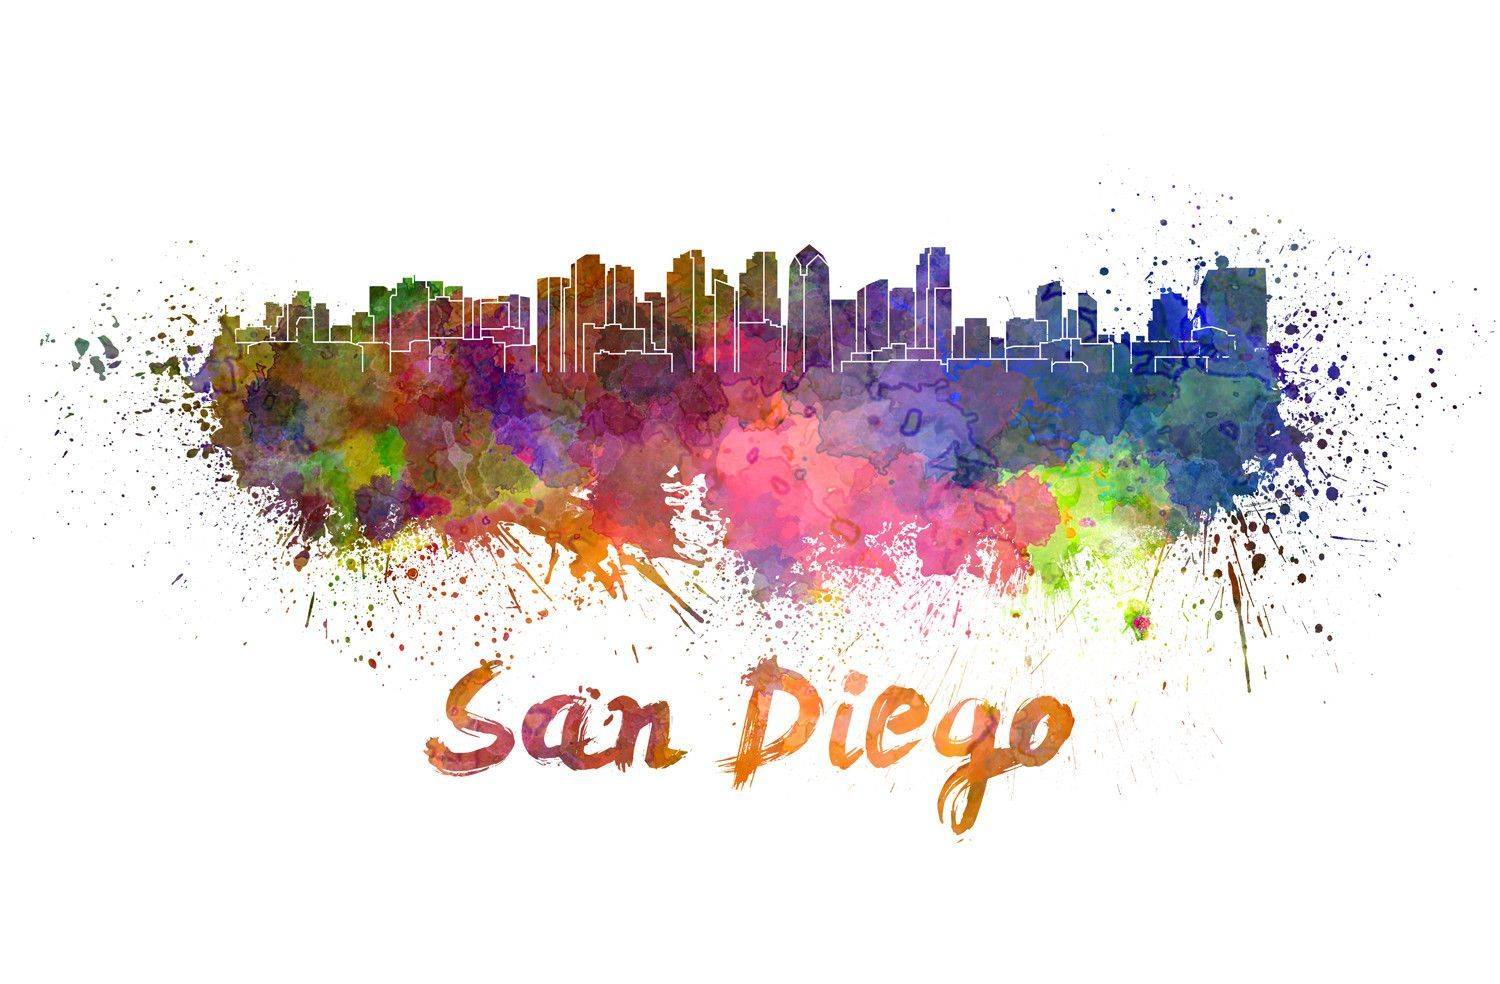 San Diego Splatter Skyline Graphic Art Art Watercolor Splatter